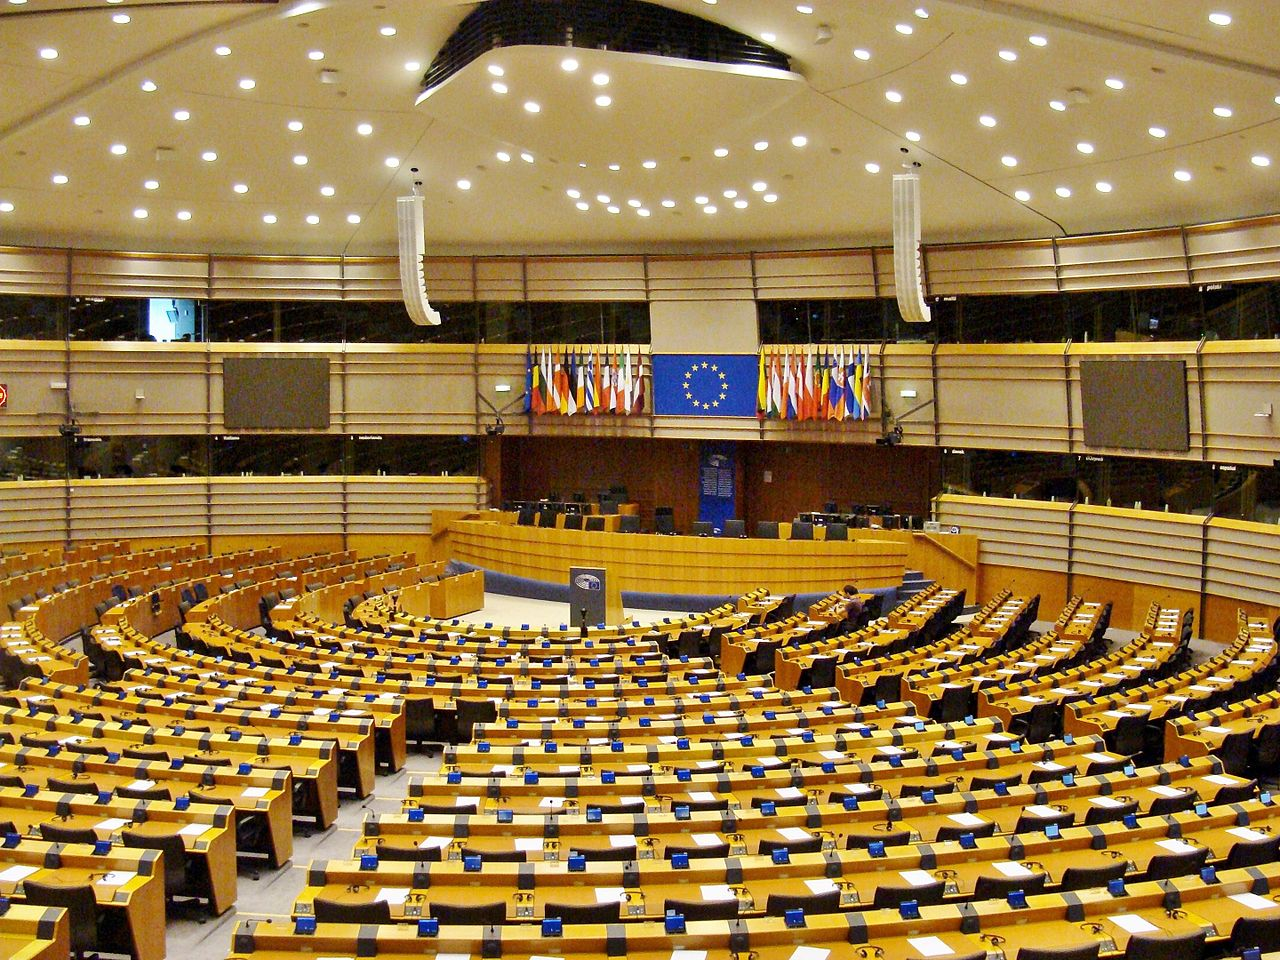 https://commons.wikimedia.org/wiki/File:European_Parlament_Hemicycle_Bryssels,_Belgium_2016_03.jpg